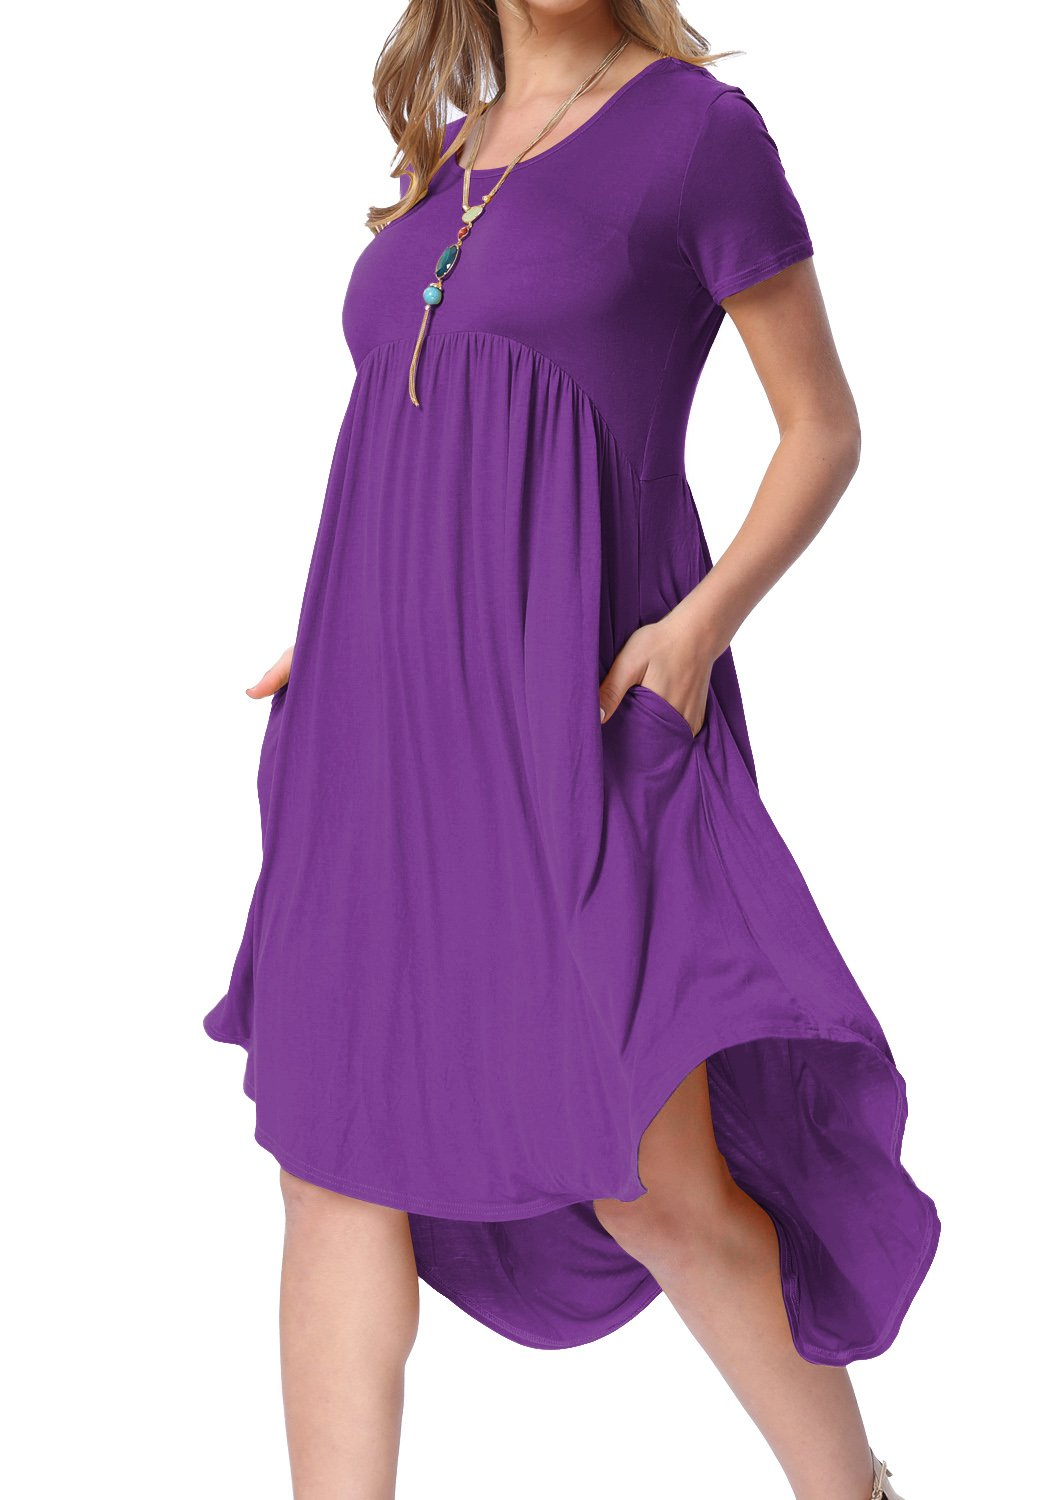 levaca Womens Summer Plain Short Sleeve Scoop Neck Casual Flared Party Dress Purple S